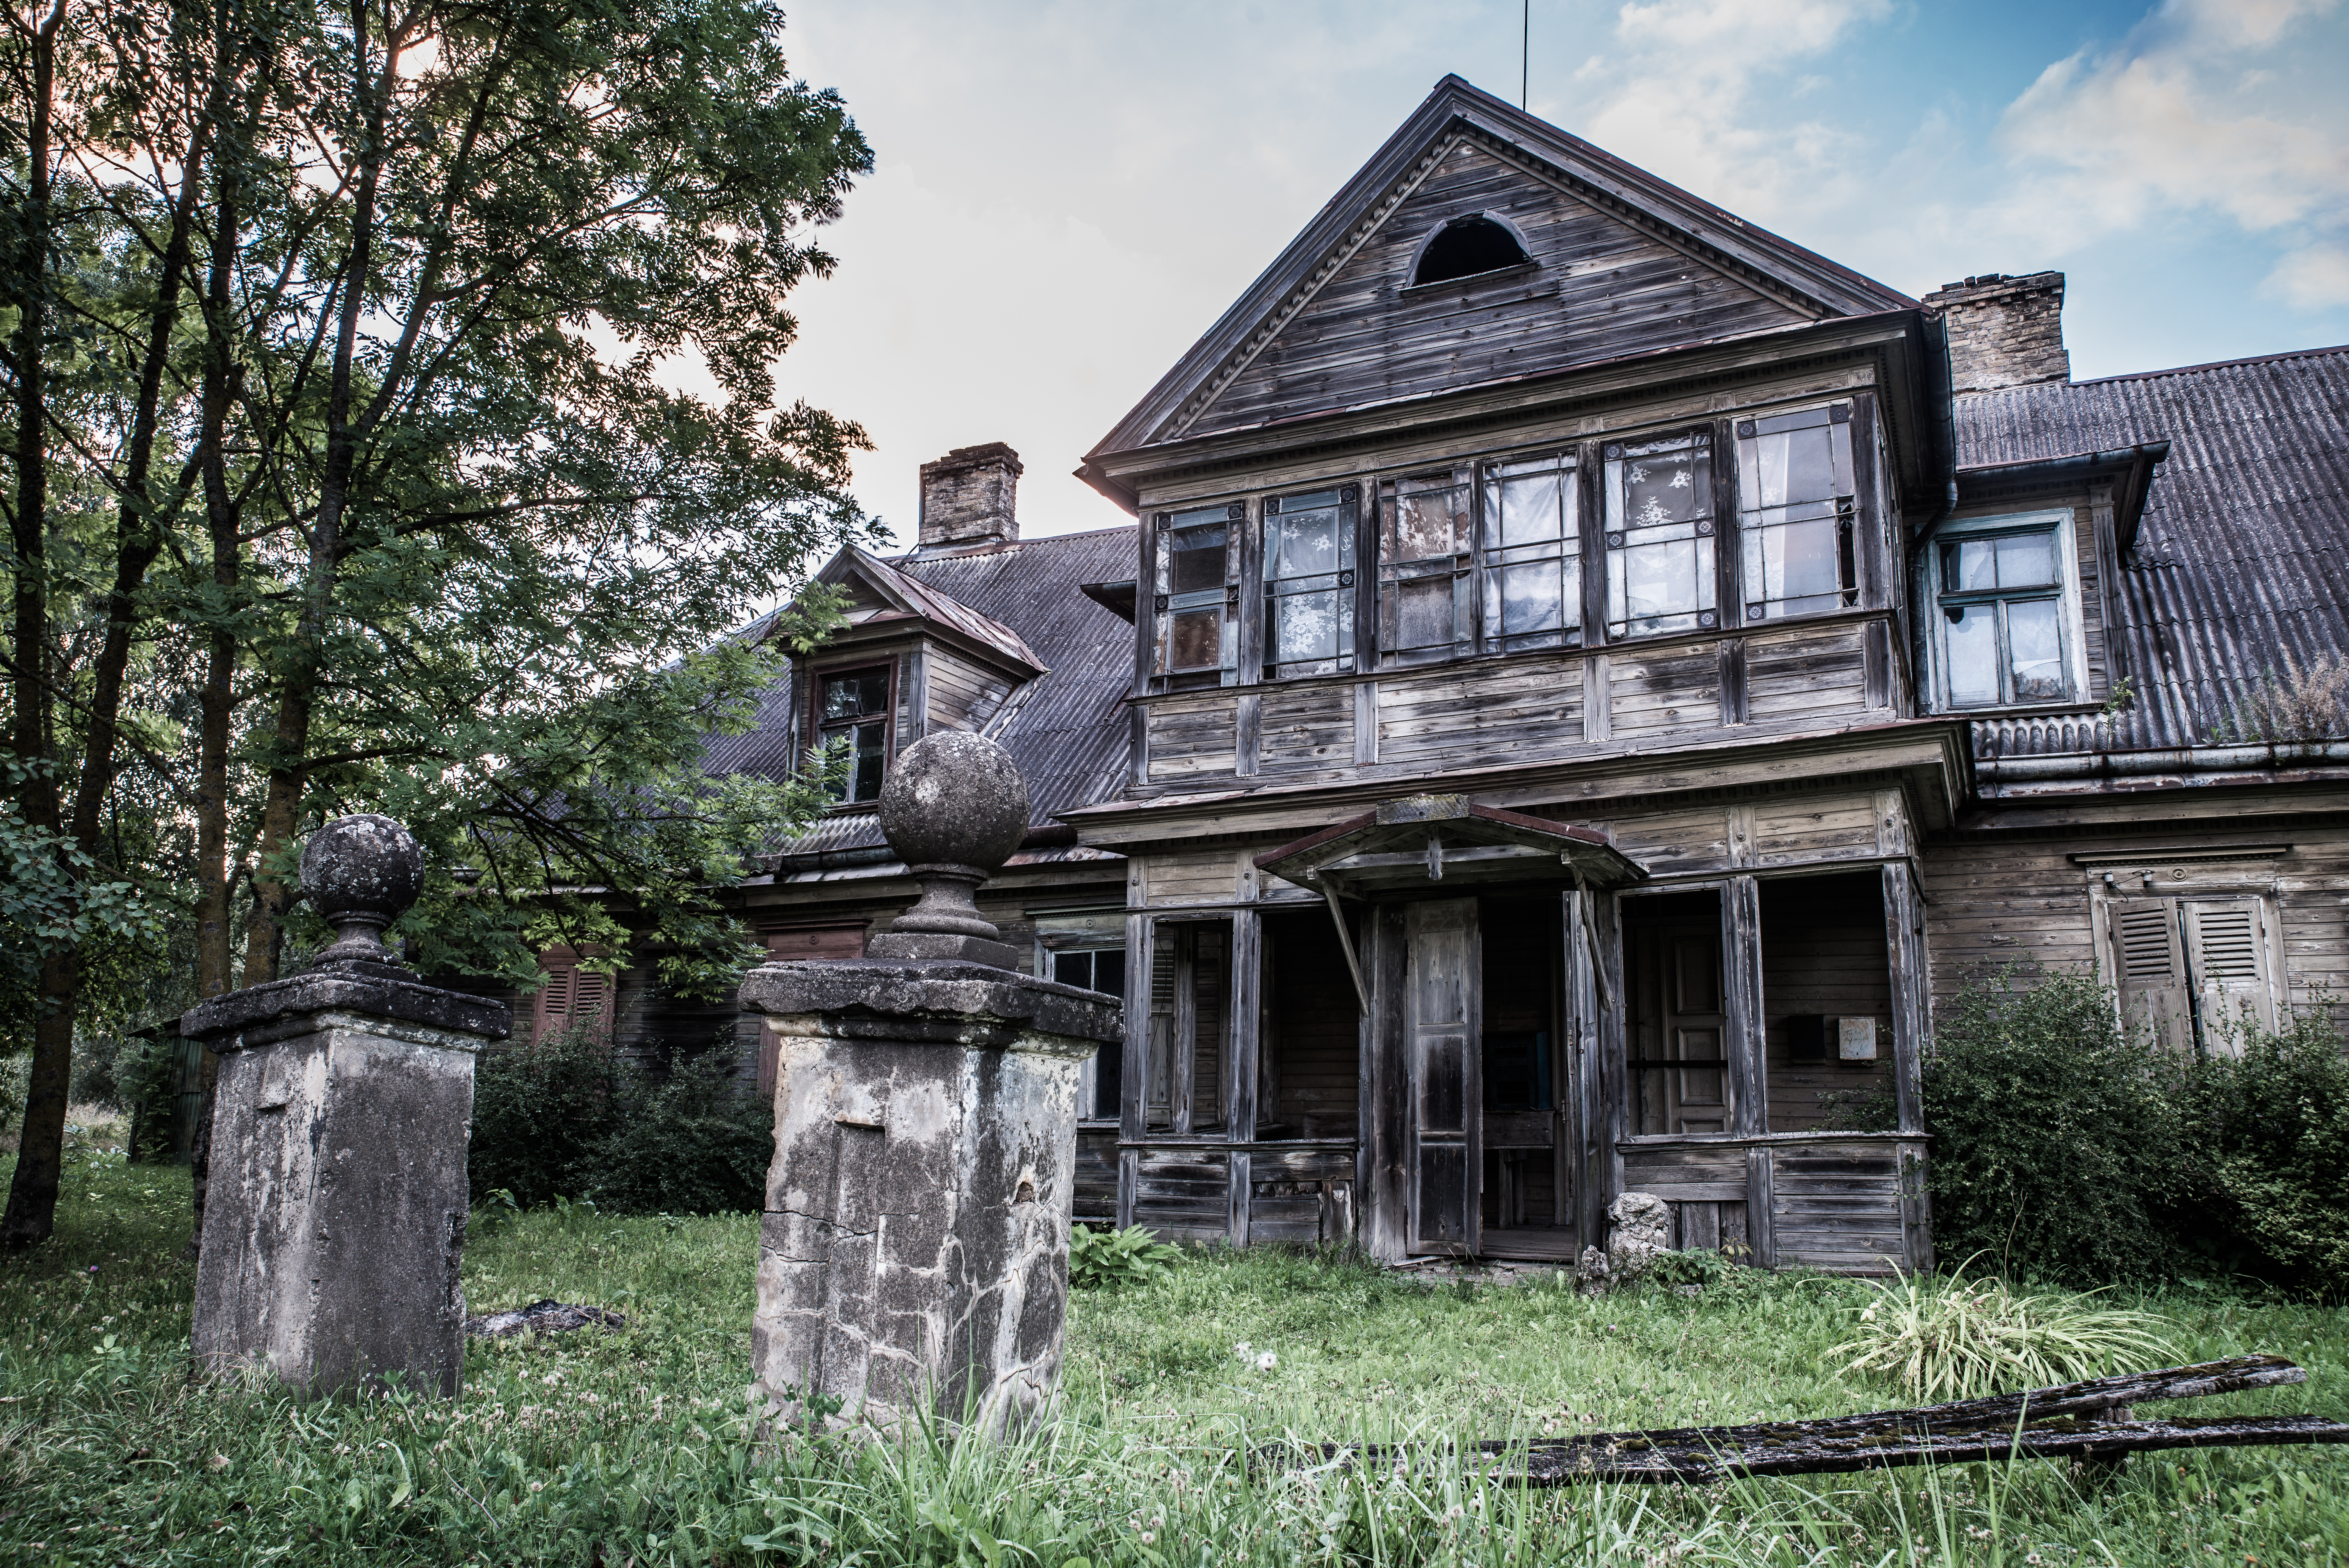 A particularly spooky home with gravestones included.